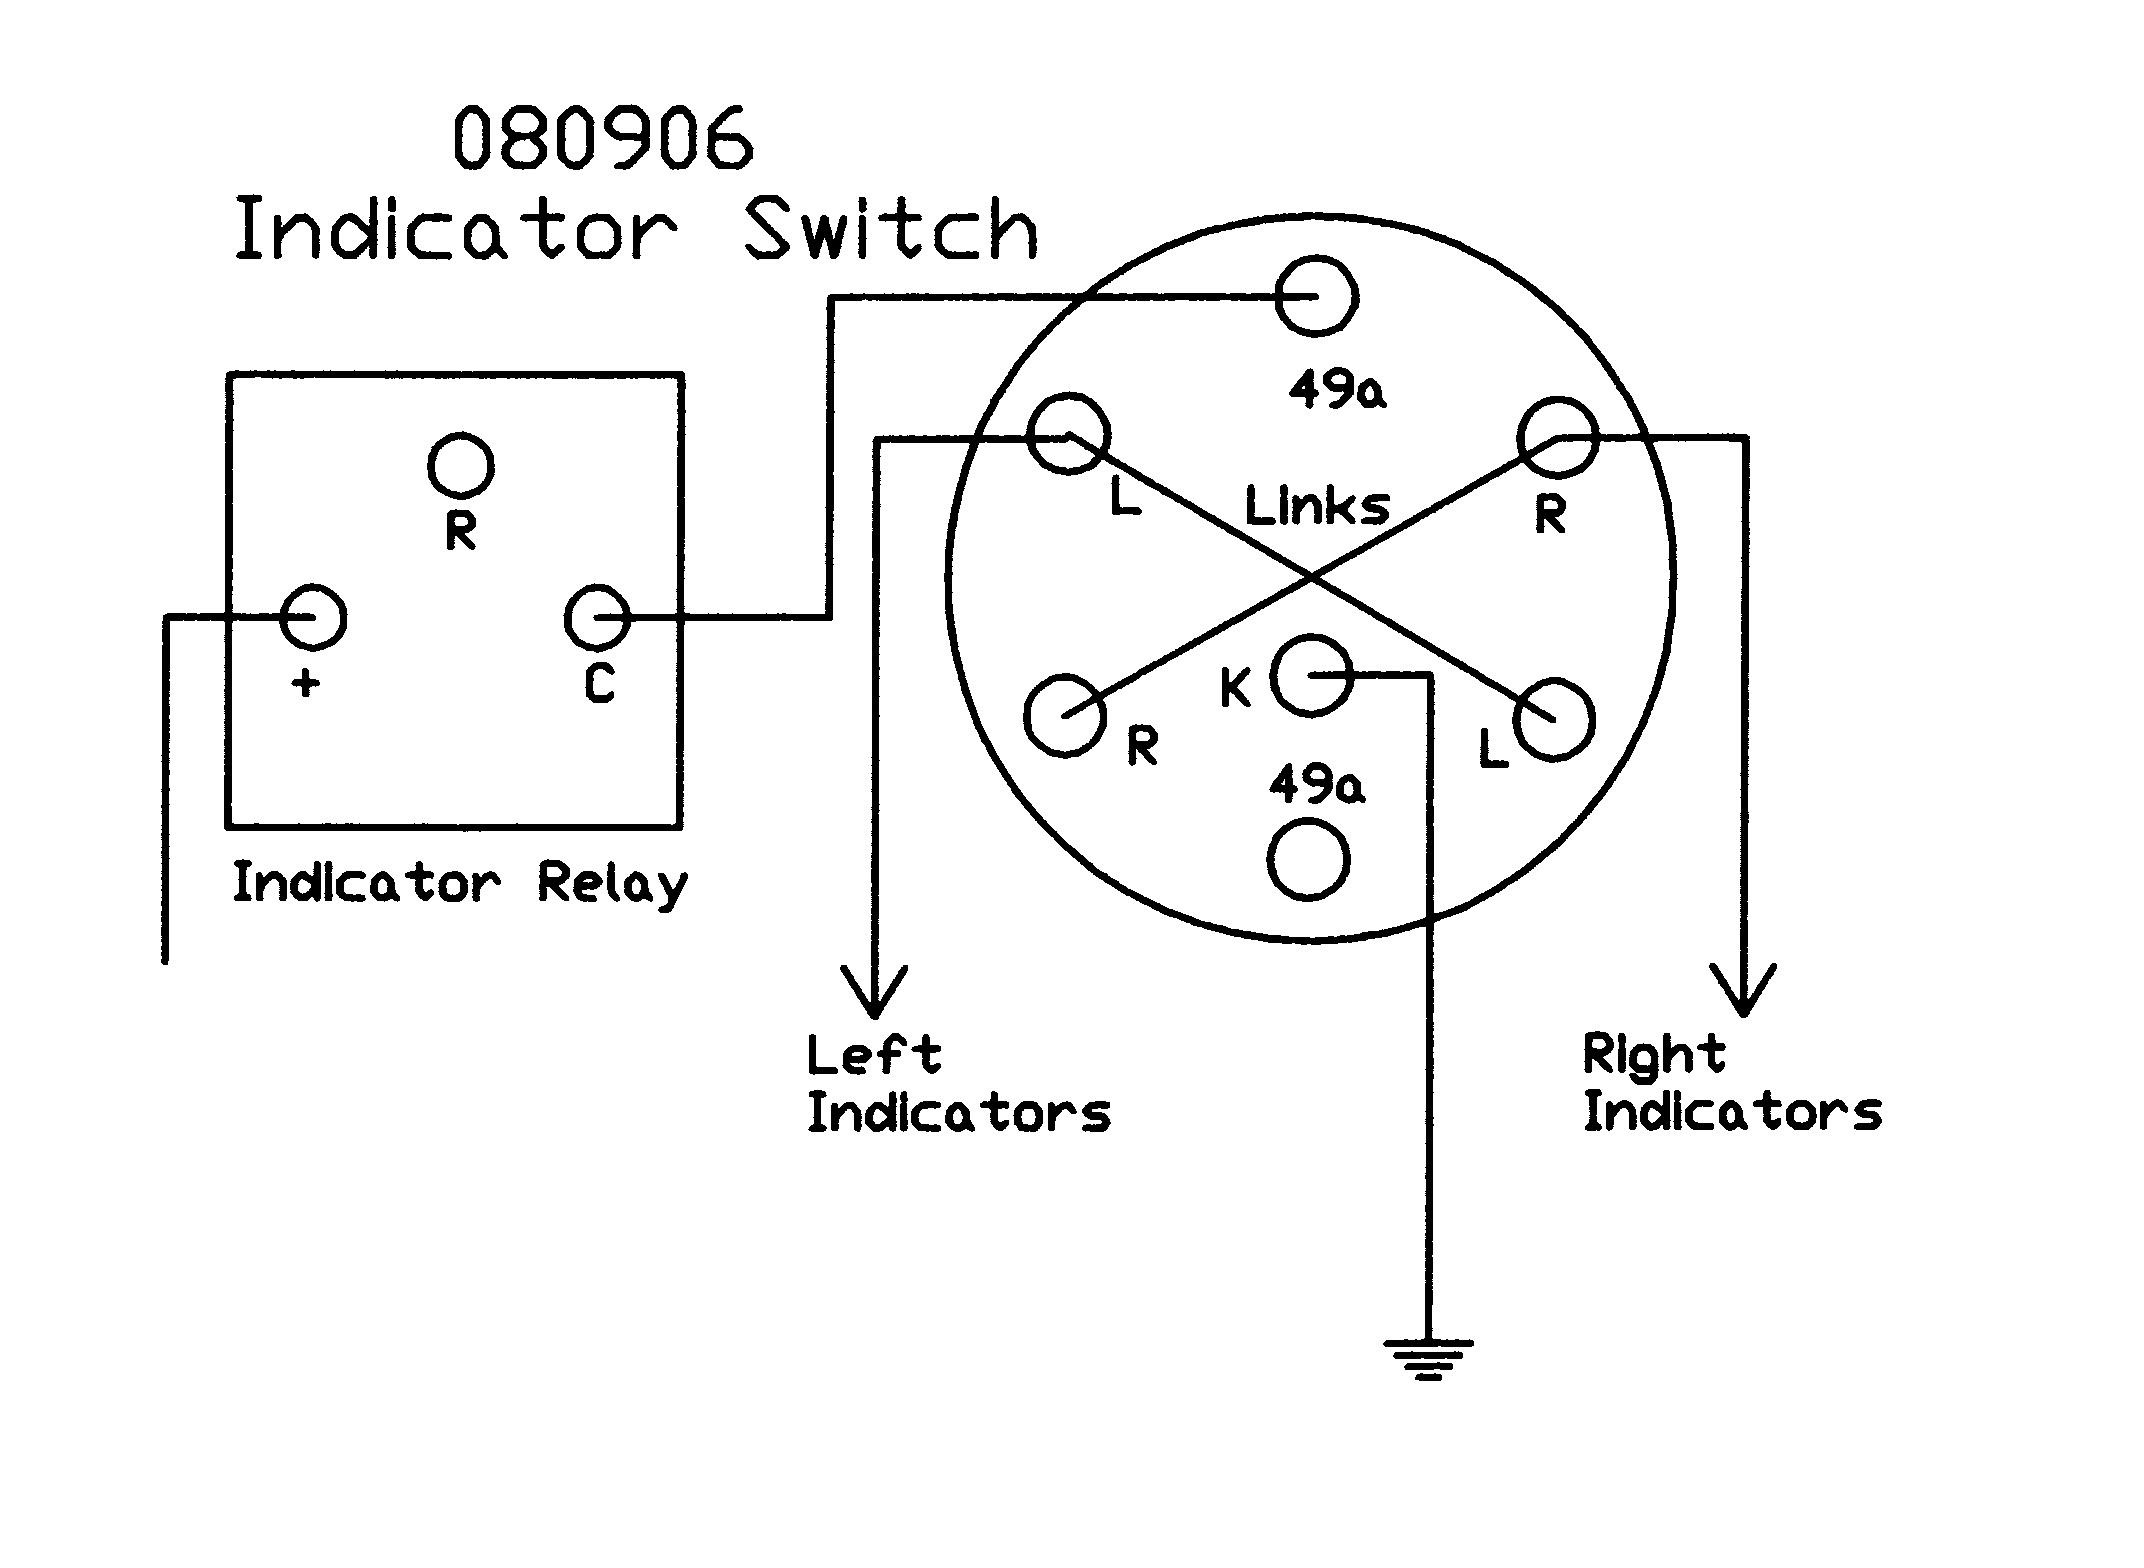 080906_wiring_diagram caterham wiring diagram hvac wiring diagrams \u2022 wiring diagrams j hazard warning switch wiring diagram at webbmarketing.co